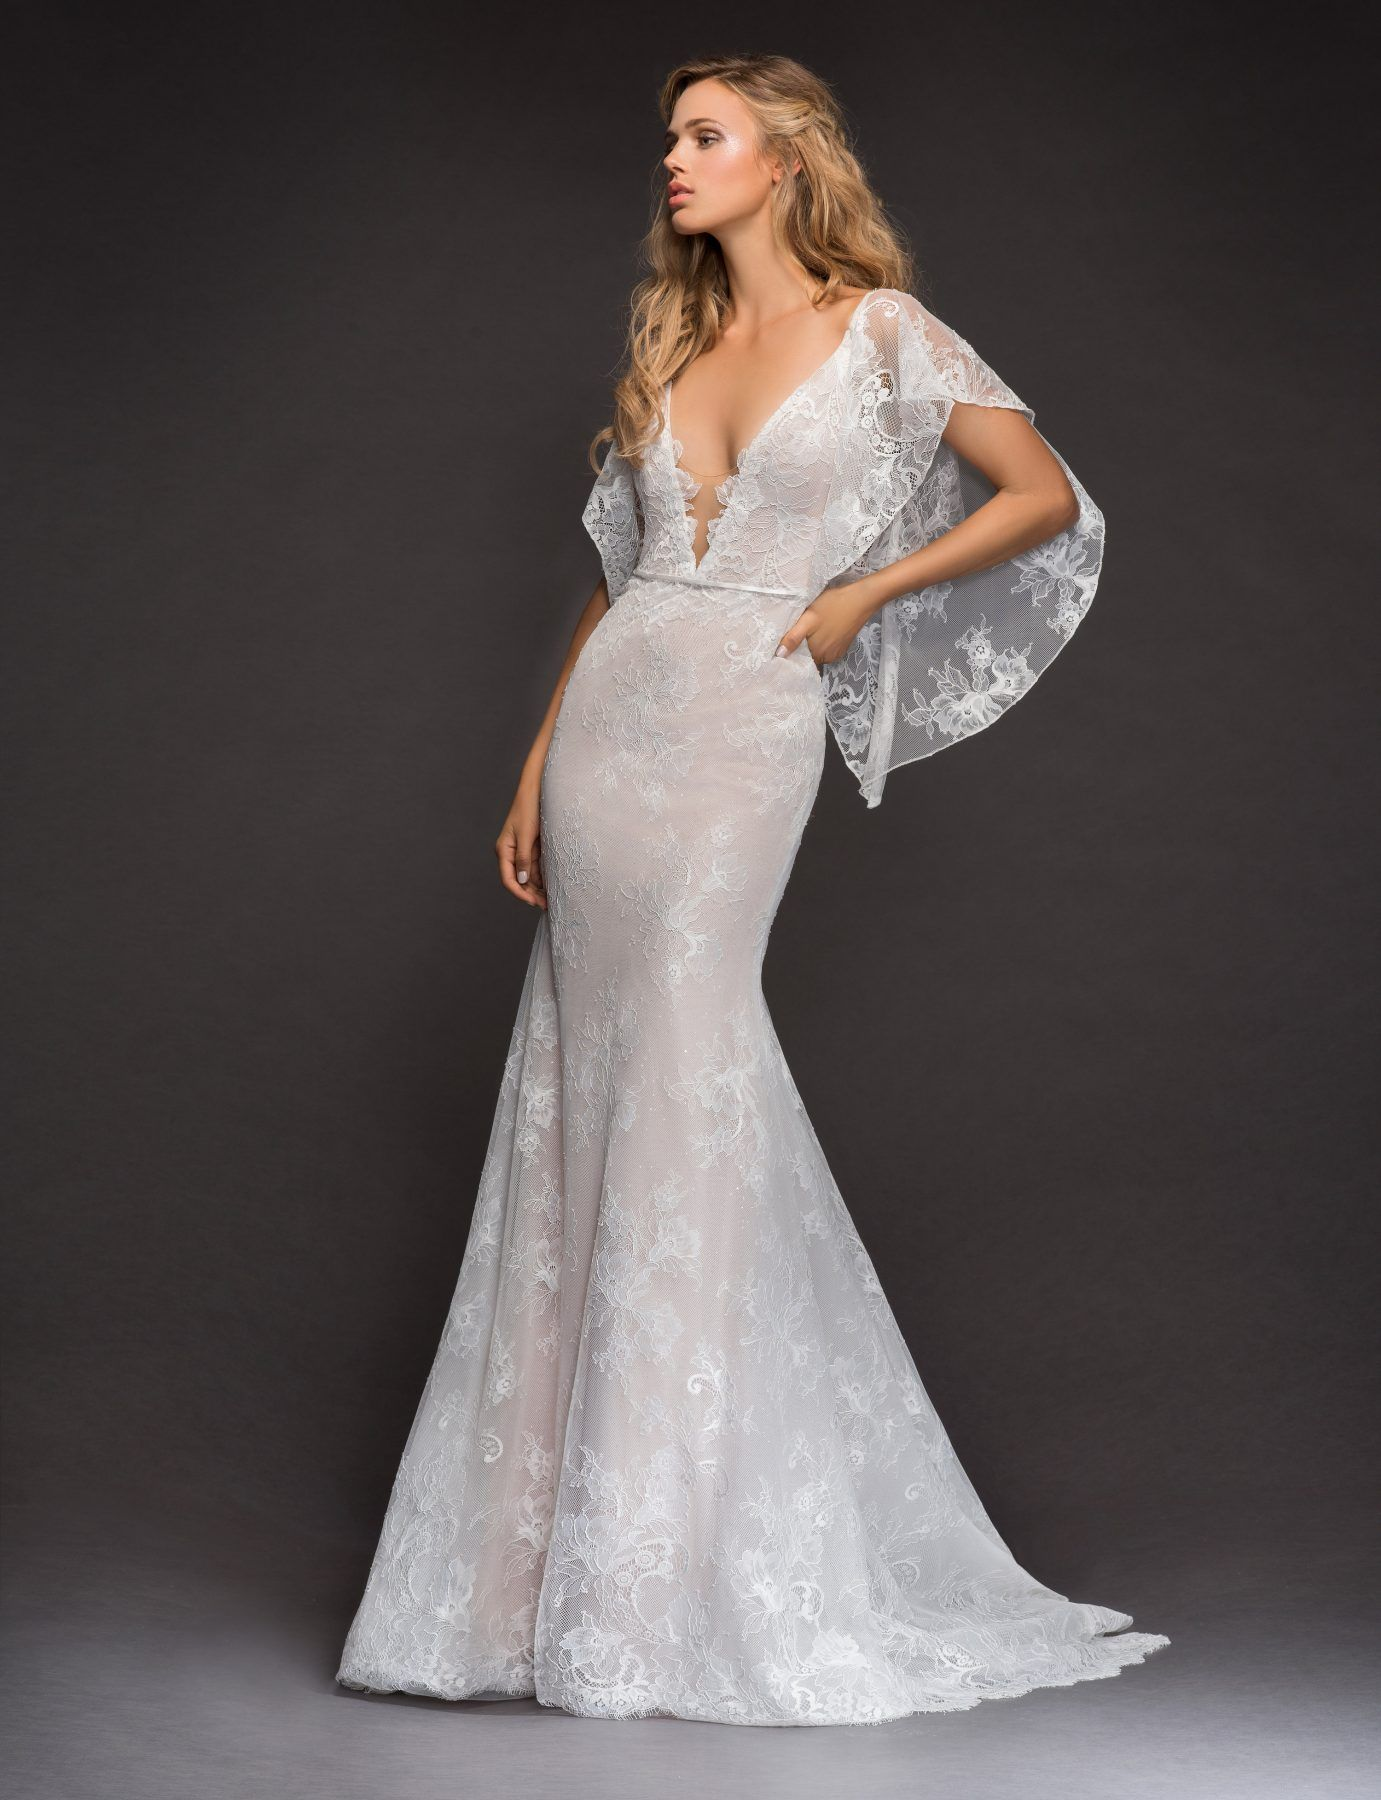 50629d42426 Open Back Flutter Sleeve Lace Wedding Dress by Hayley Paige - Image 1  zoomed in